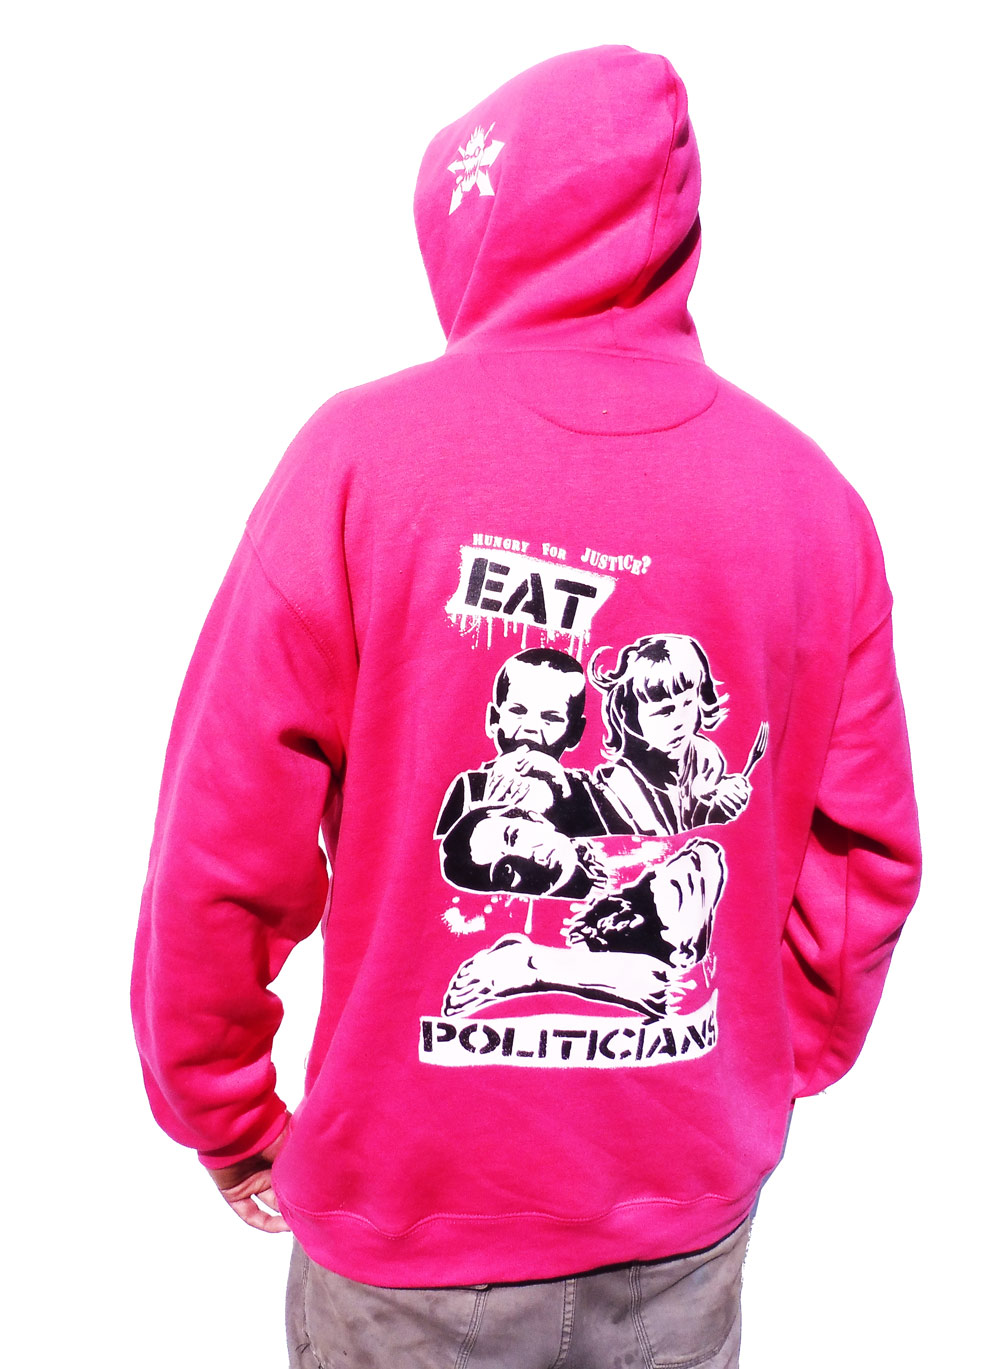 Revolting Mass / MAS - Eat Politicians Colour Hoodie